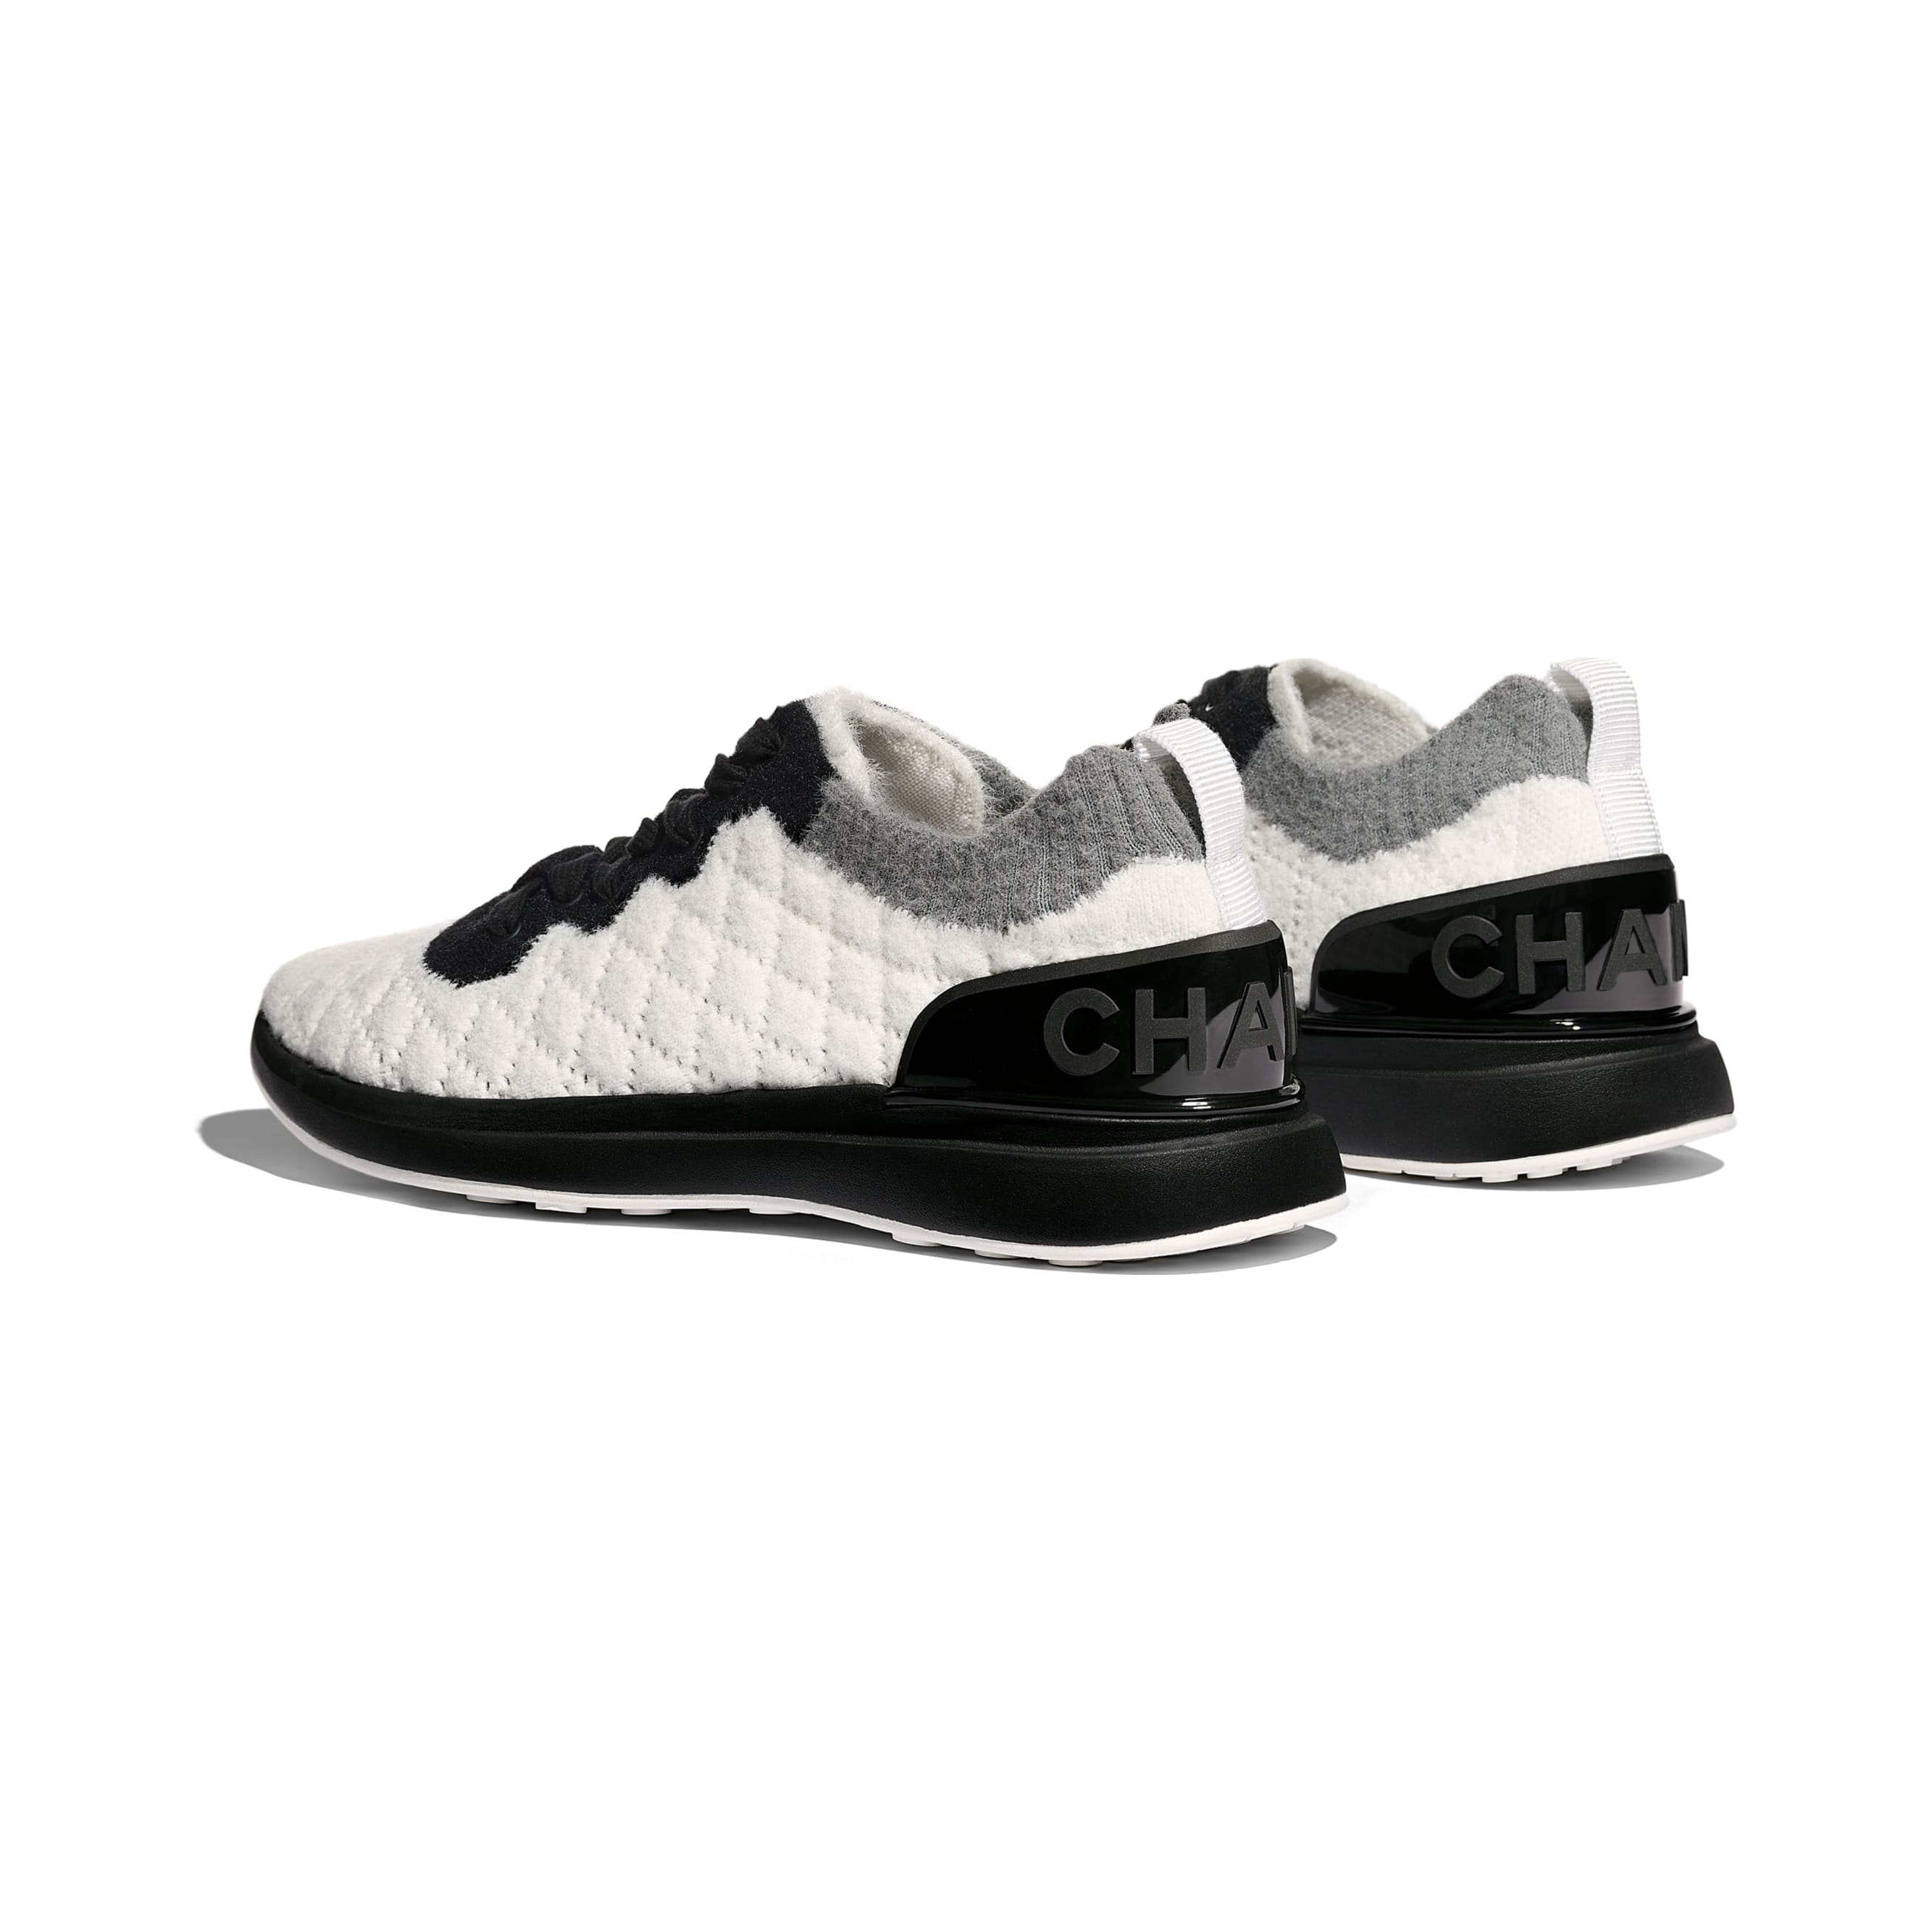 Trainers - White, Black & Gray - Mixed Fibres - Other view - see standard sized version